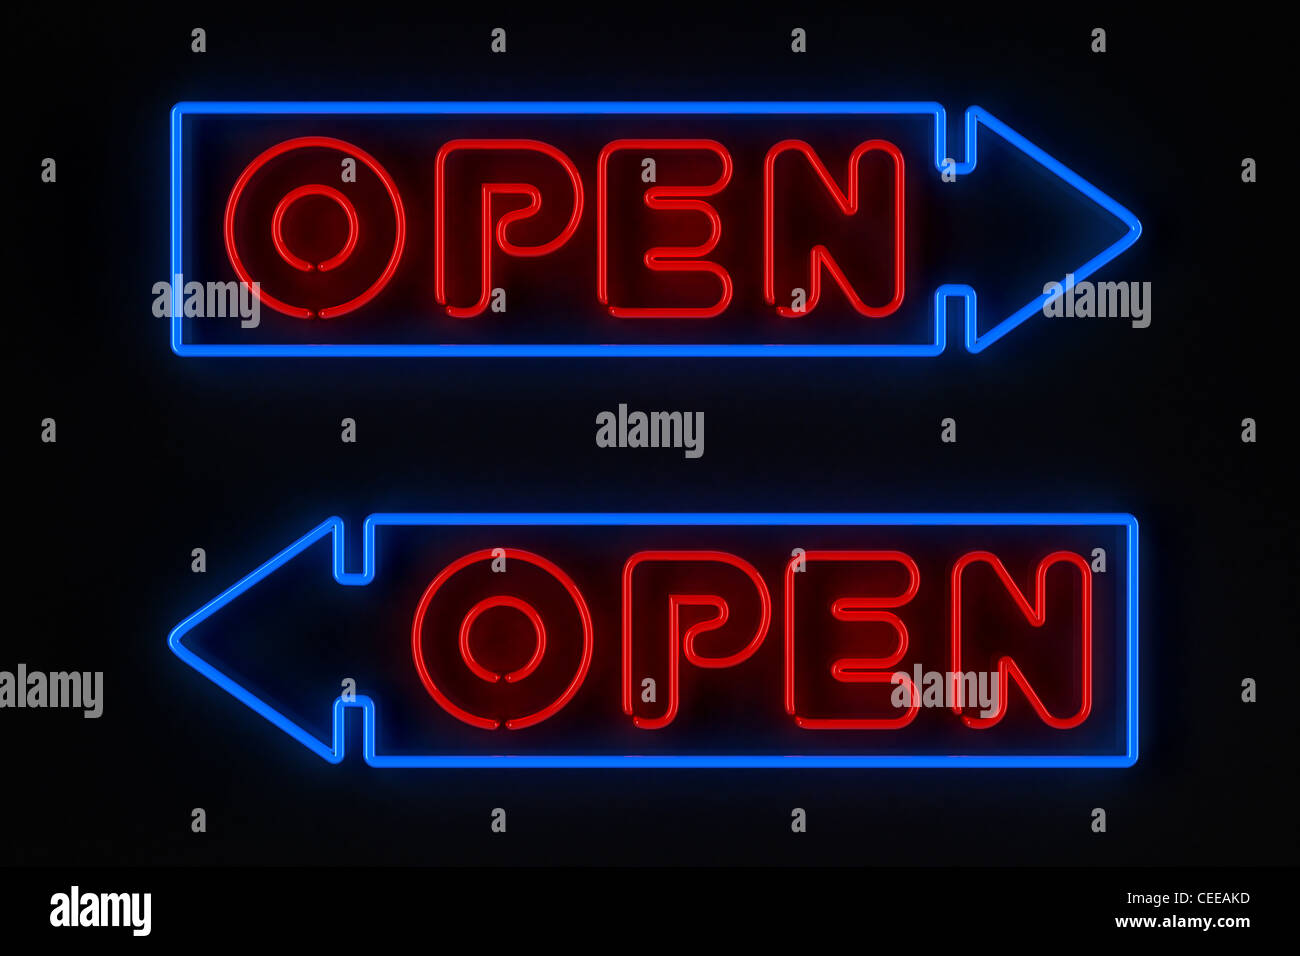 Neon sign with arrow - Stock Image